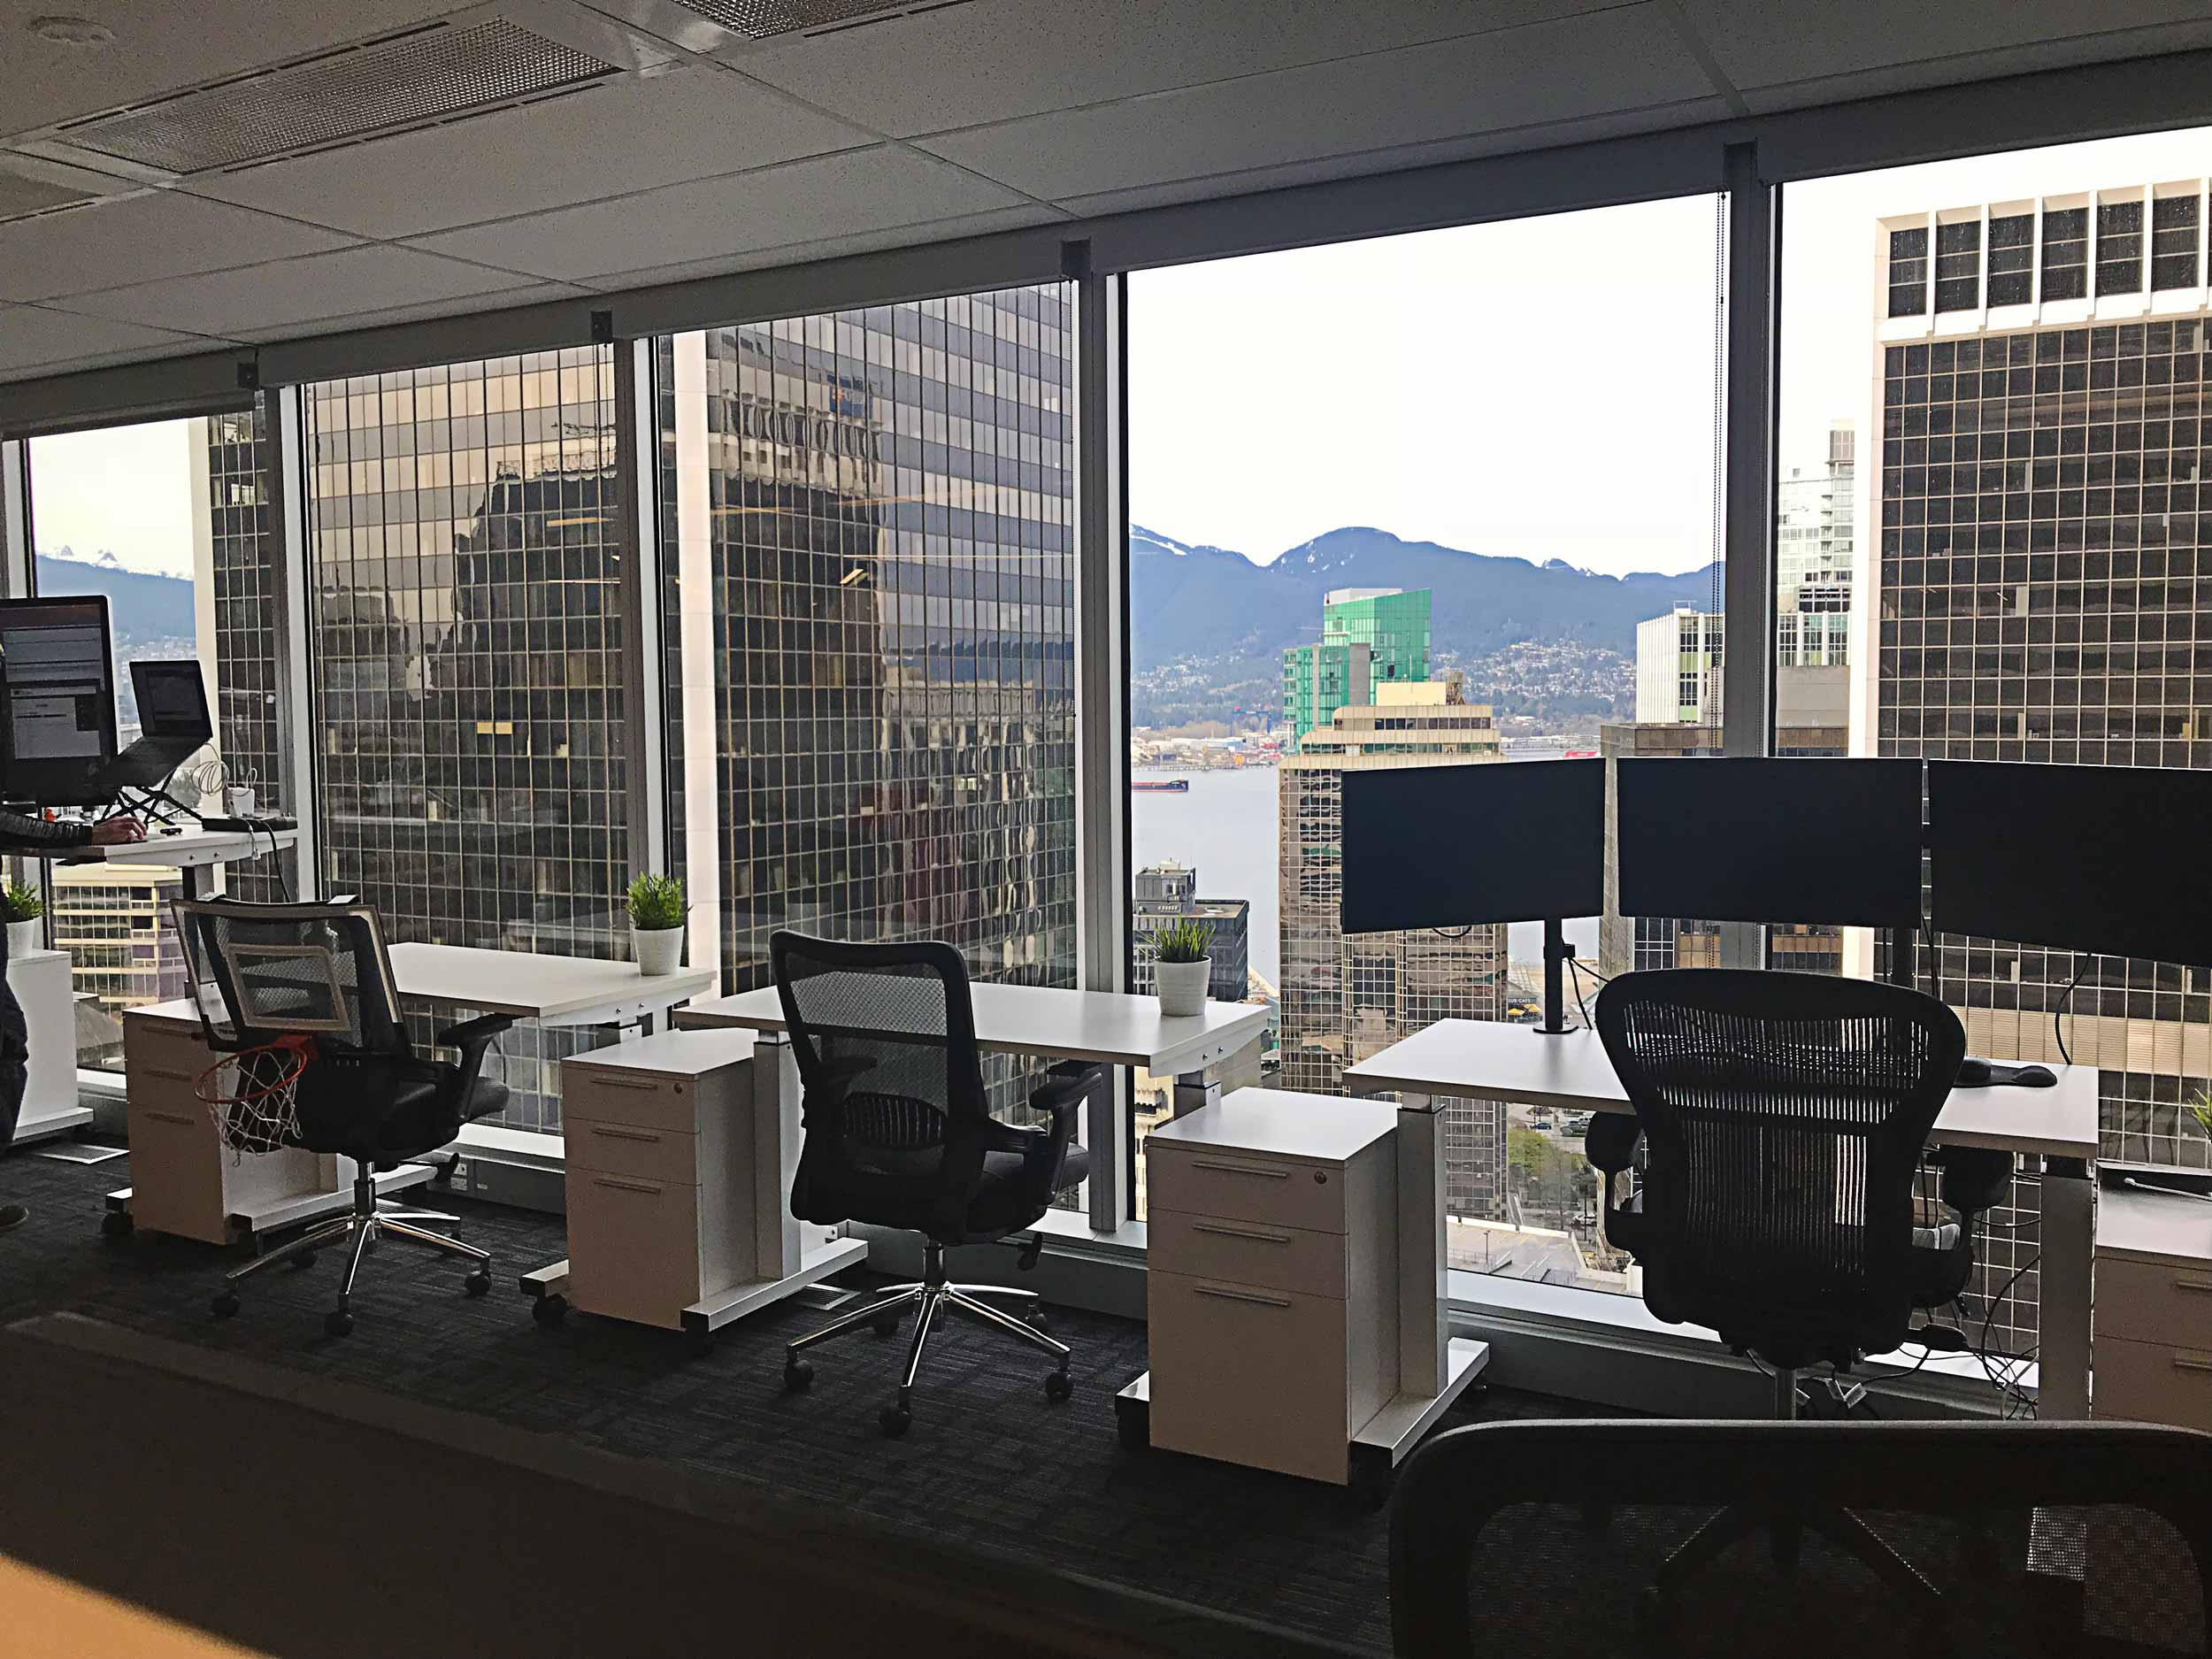 Furnished Suites from $650 - Priced per person/monthCall for coworking and virtual officesPlease note, price estimates of this office are subject to change and may vary by several factors including your move-in date, size of space you need, exposure, and length of rental term (e.g. monthly or 1 year)